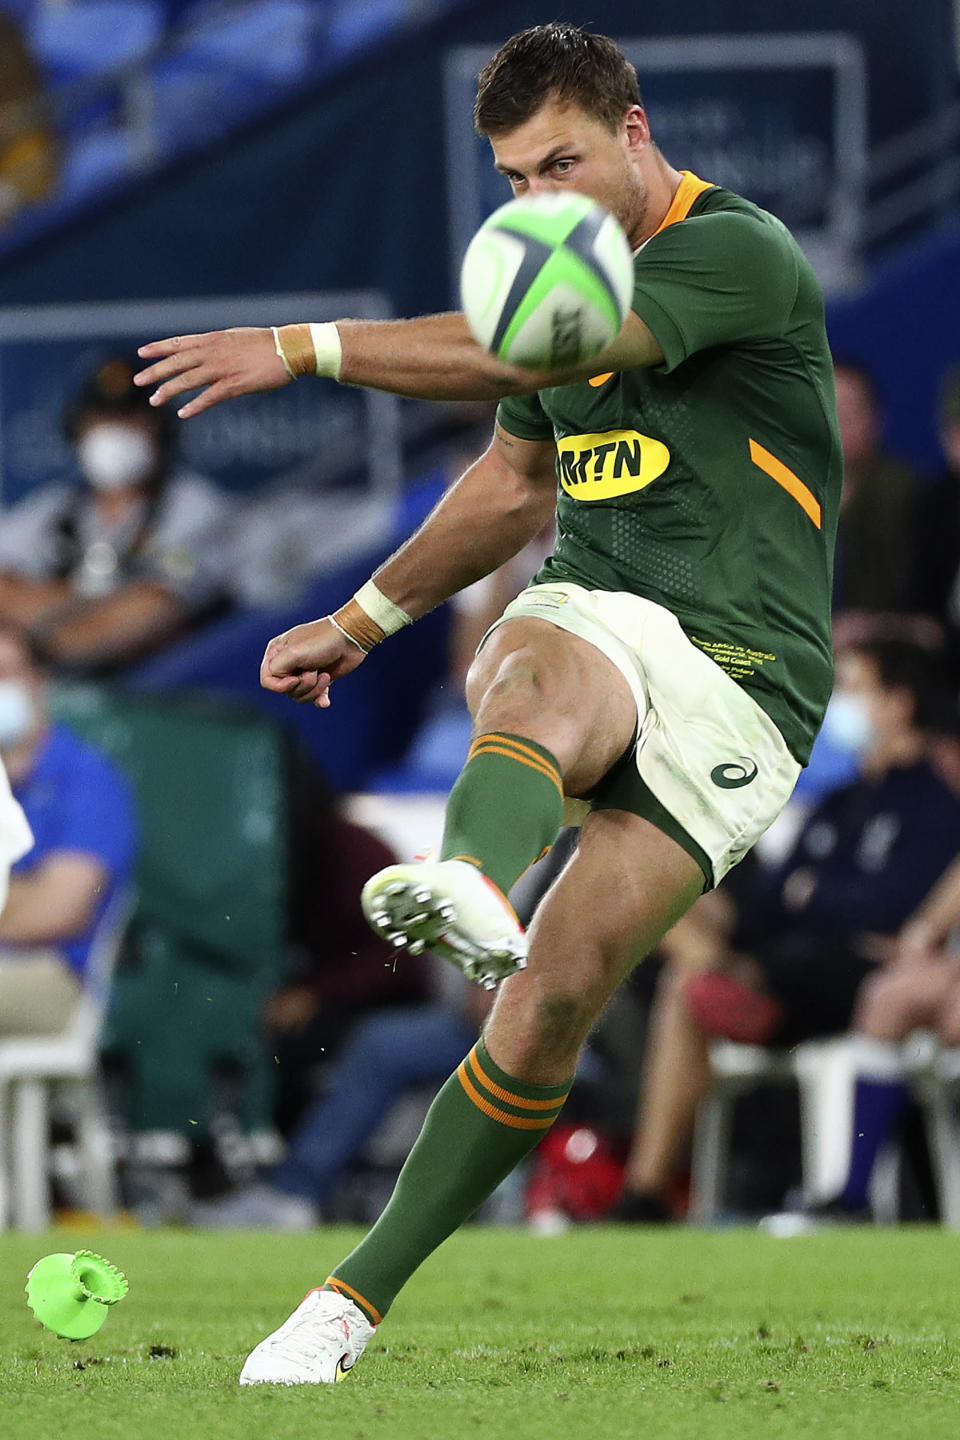 South Africa's Handre Pollard kicks a penalty against Australia during their Rugby Championship match on Sunday, Sept. 12, 2021, Gold Coast, Australia. (AP Photo/Tertius Pickard)